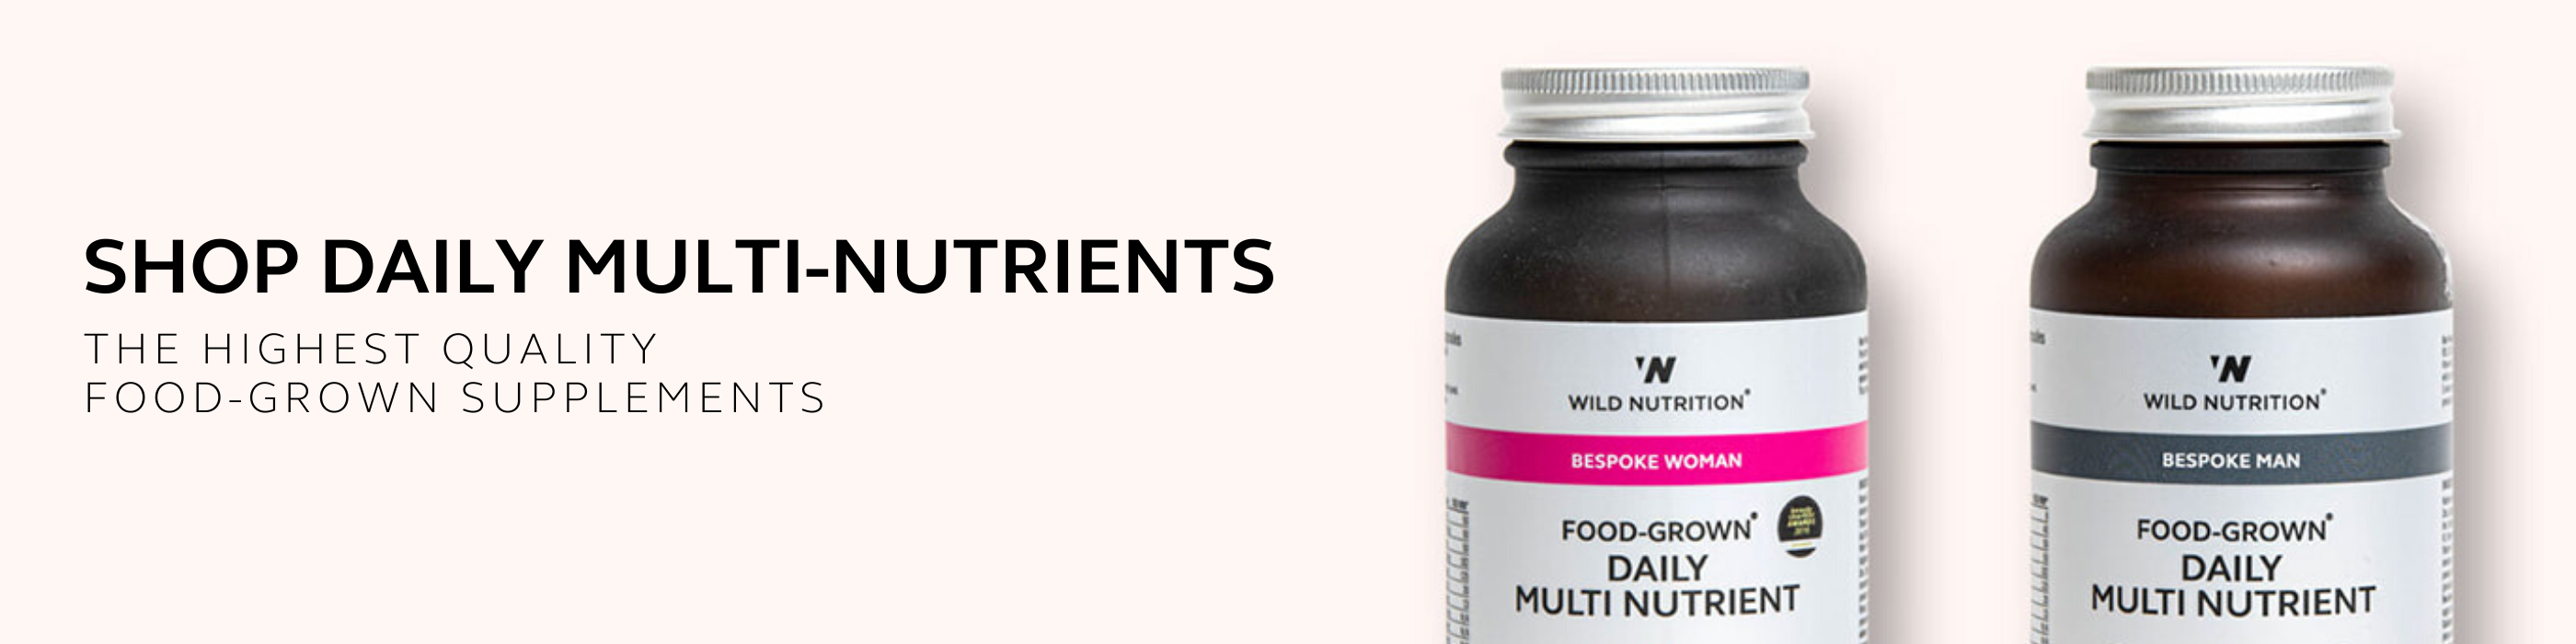 Shop Daily Multi-Nutrients | Wild Nutrition Food-Grown supplements